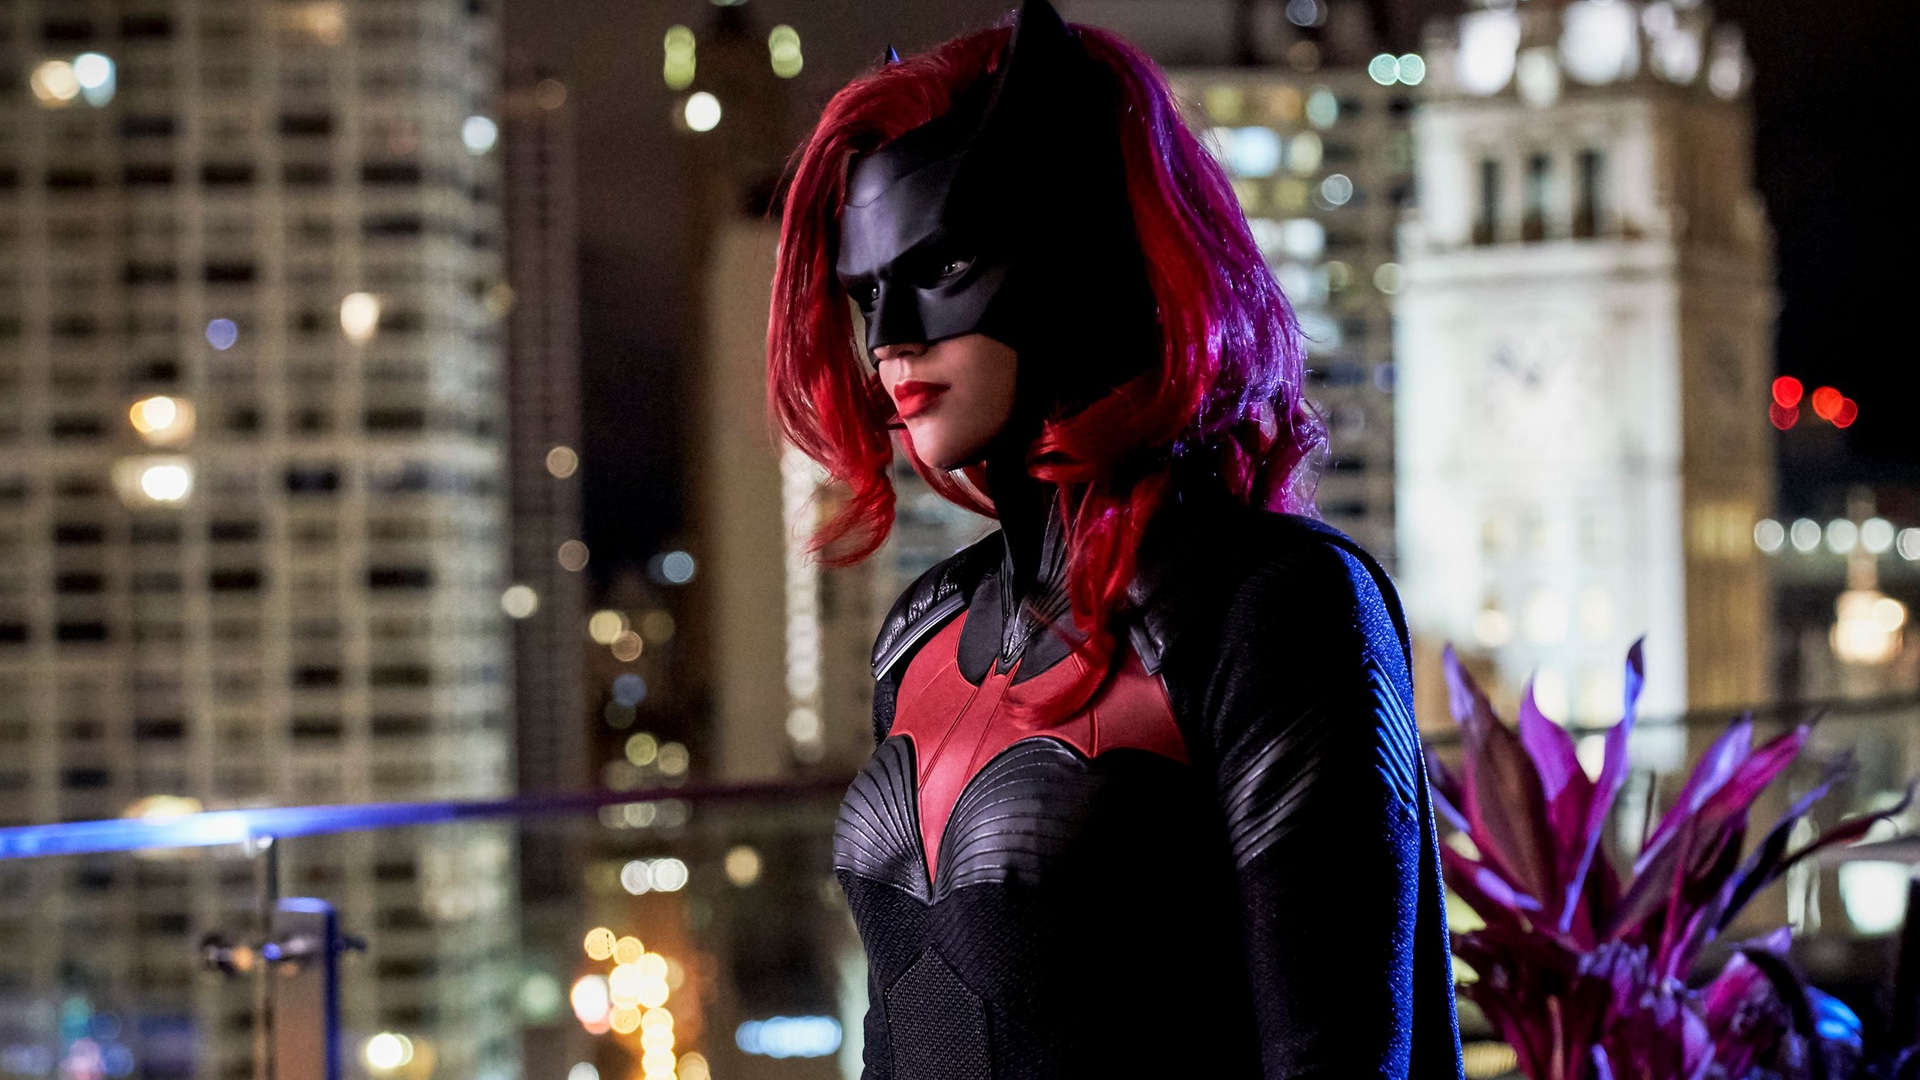 Batwoman will soon hit the small screen: know the release date here